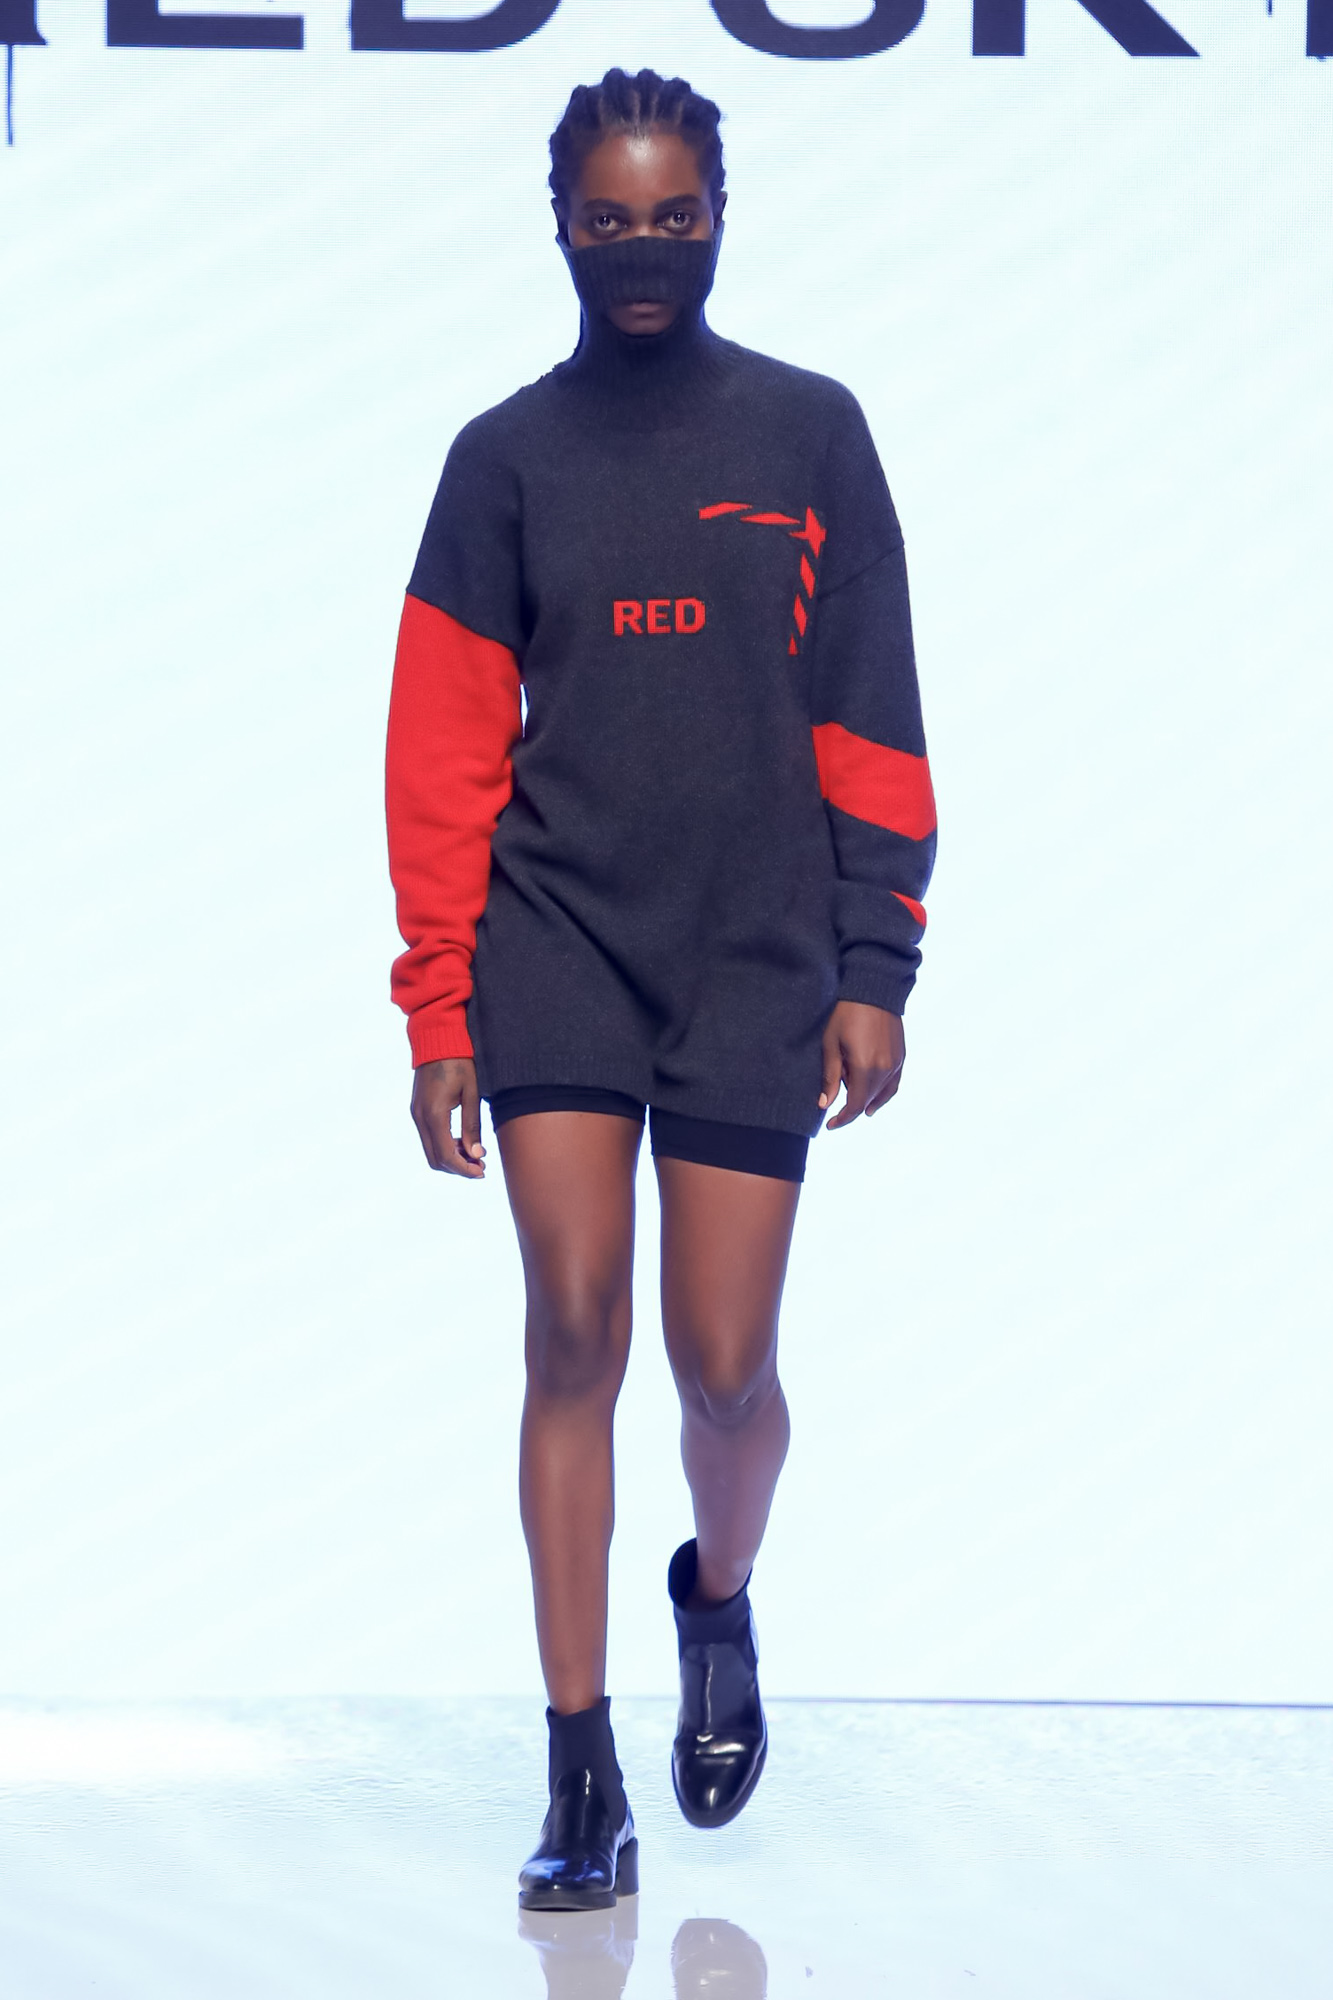 Red Skys Resort 2020 Collection Arab Fashion Week in Dubai